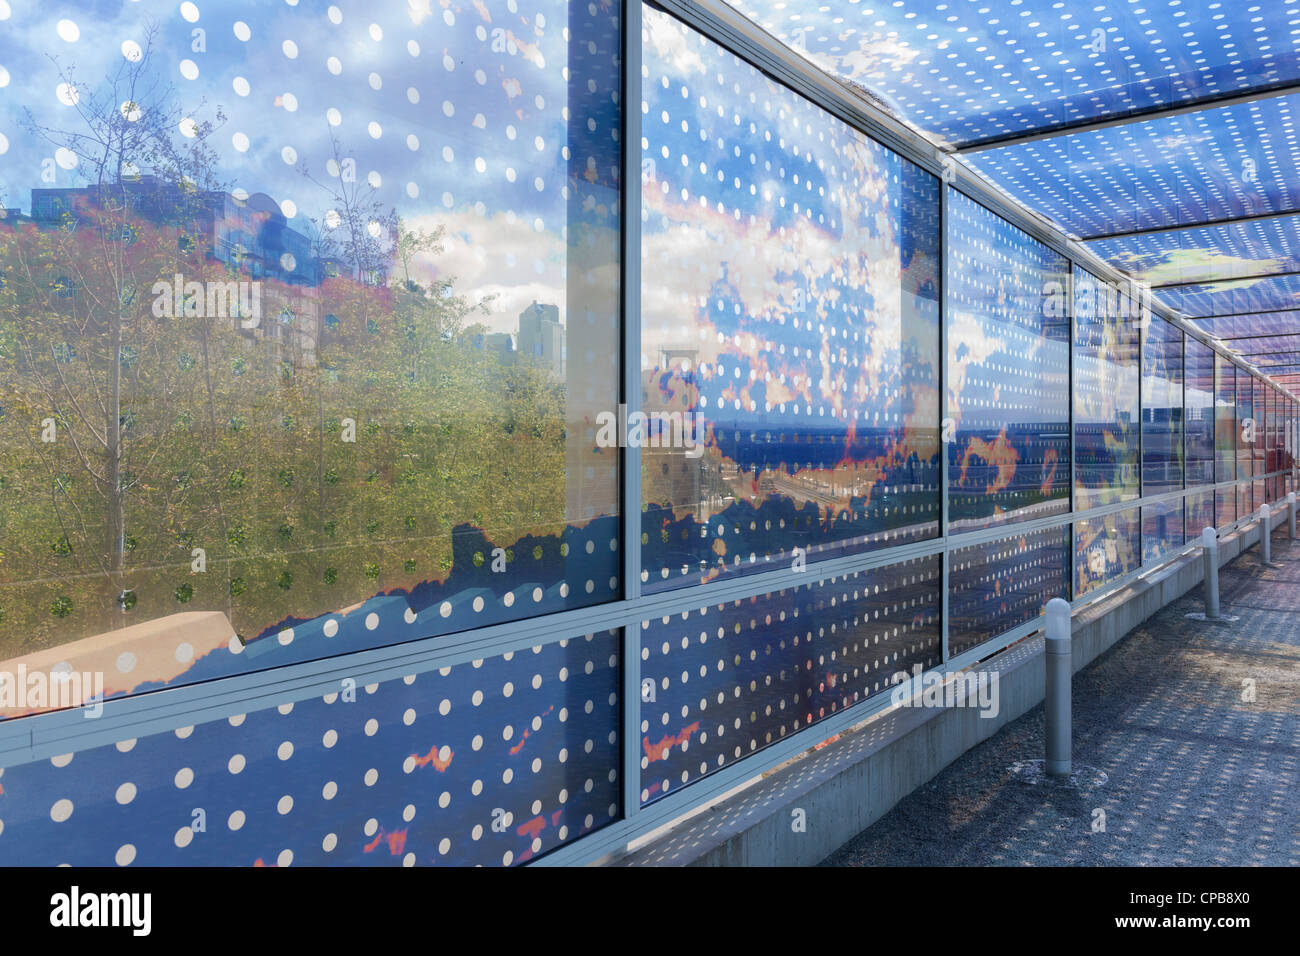 Seattle Cloud Cover, Olympic Sculpture Park - Stock Image